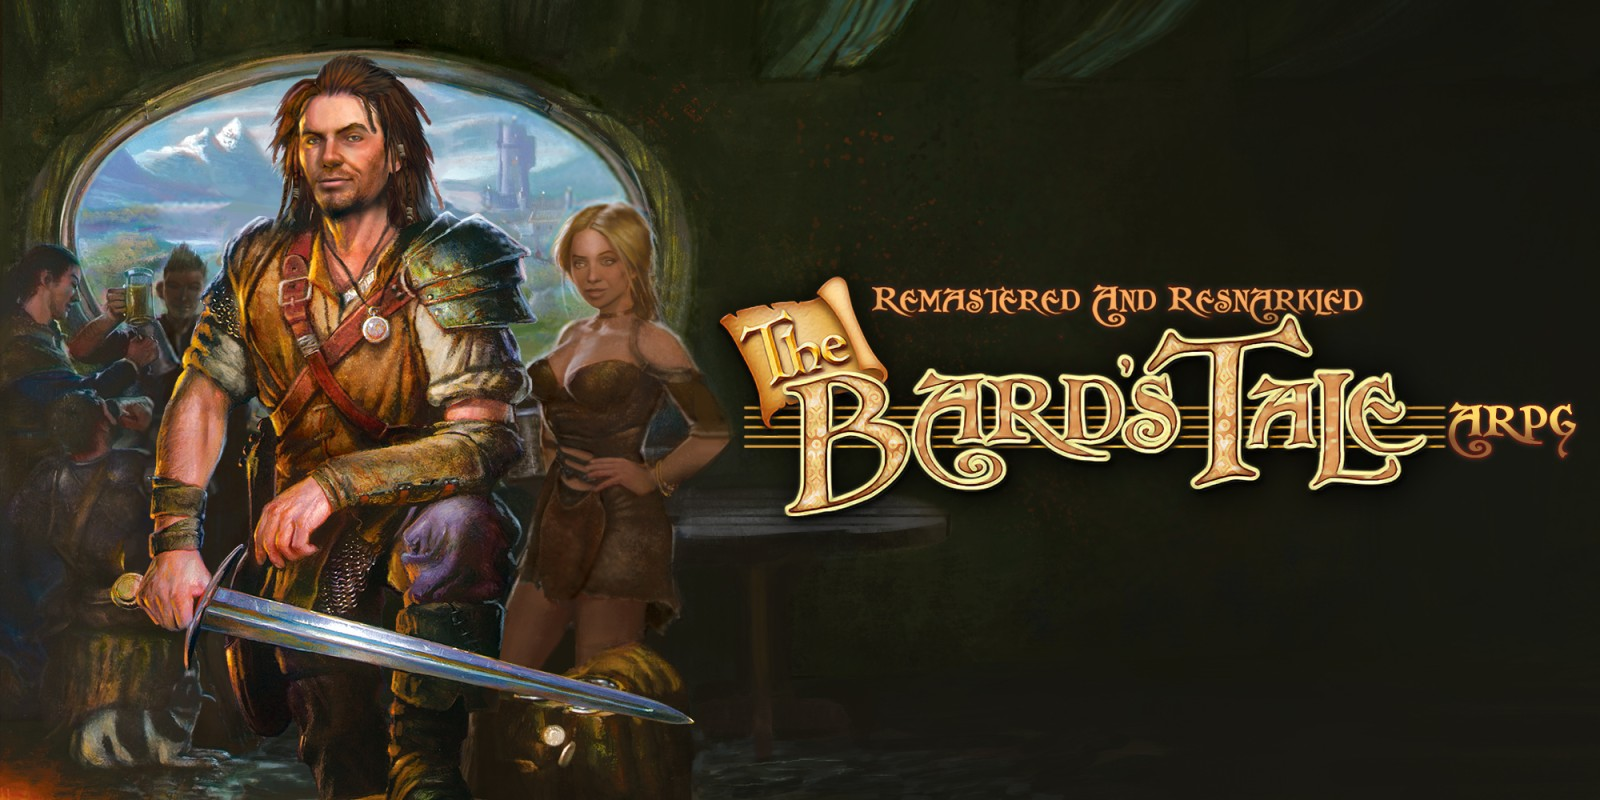 The Bard's Tale ARPG: Remastered and Resnarkled